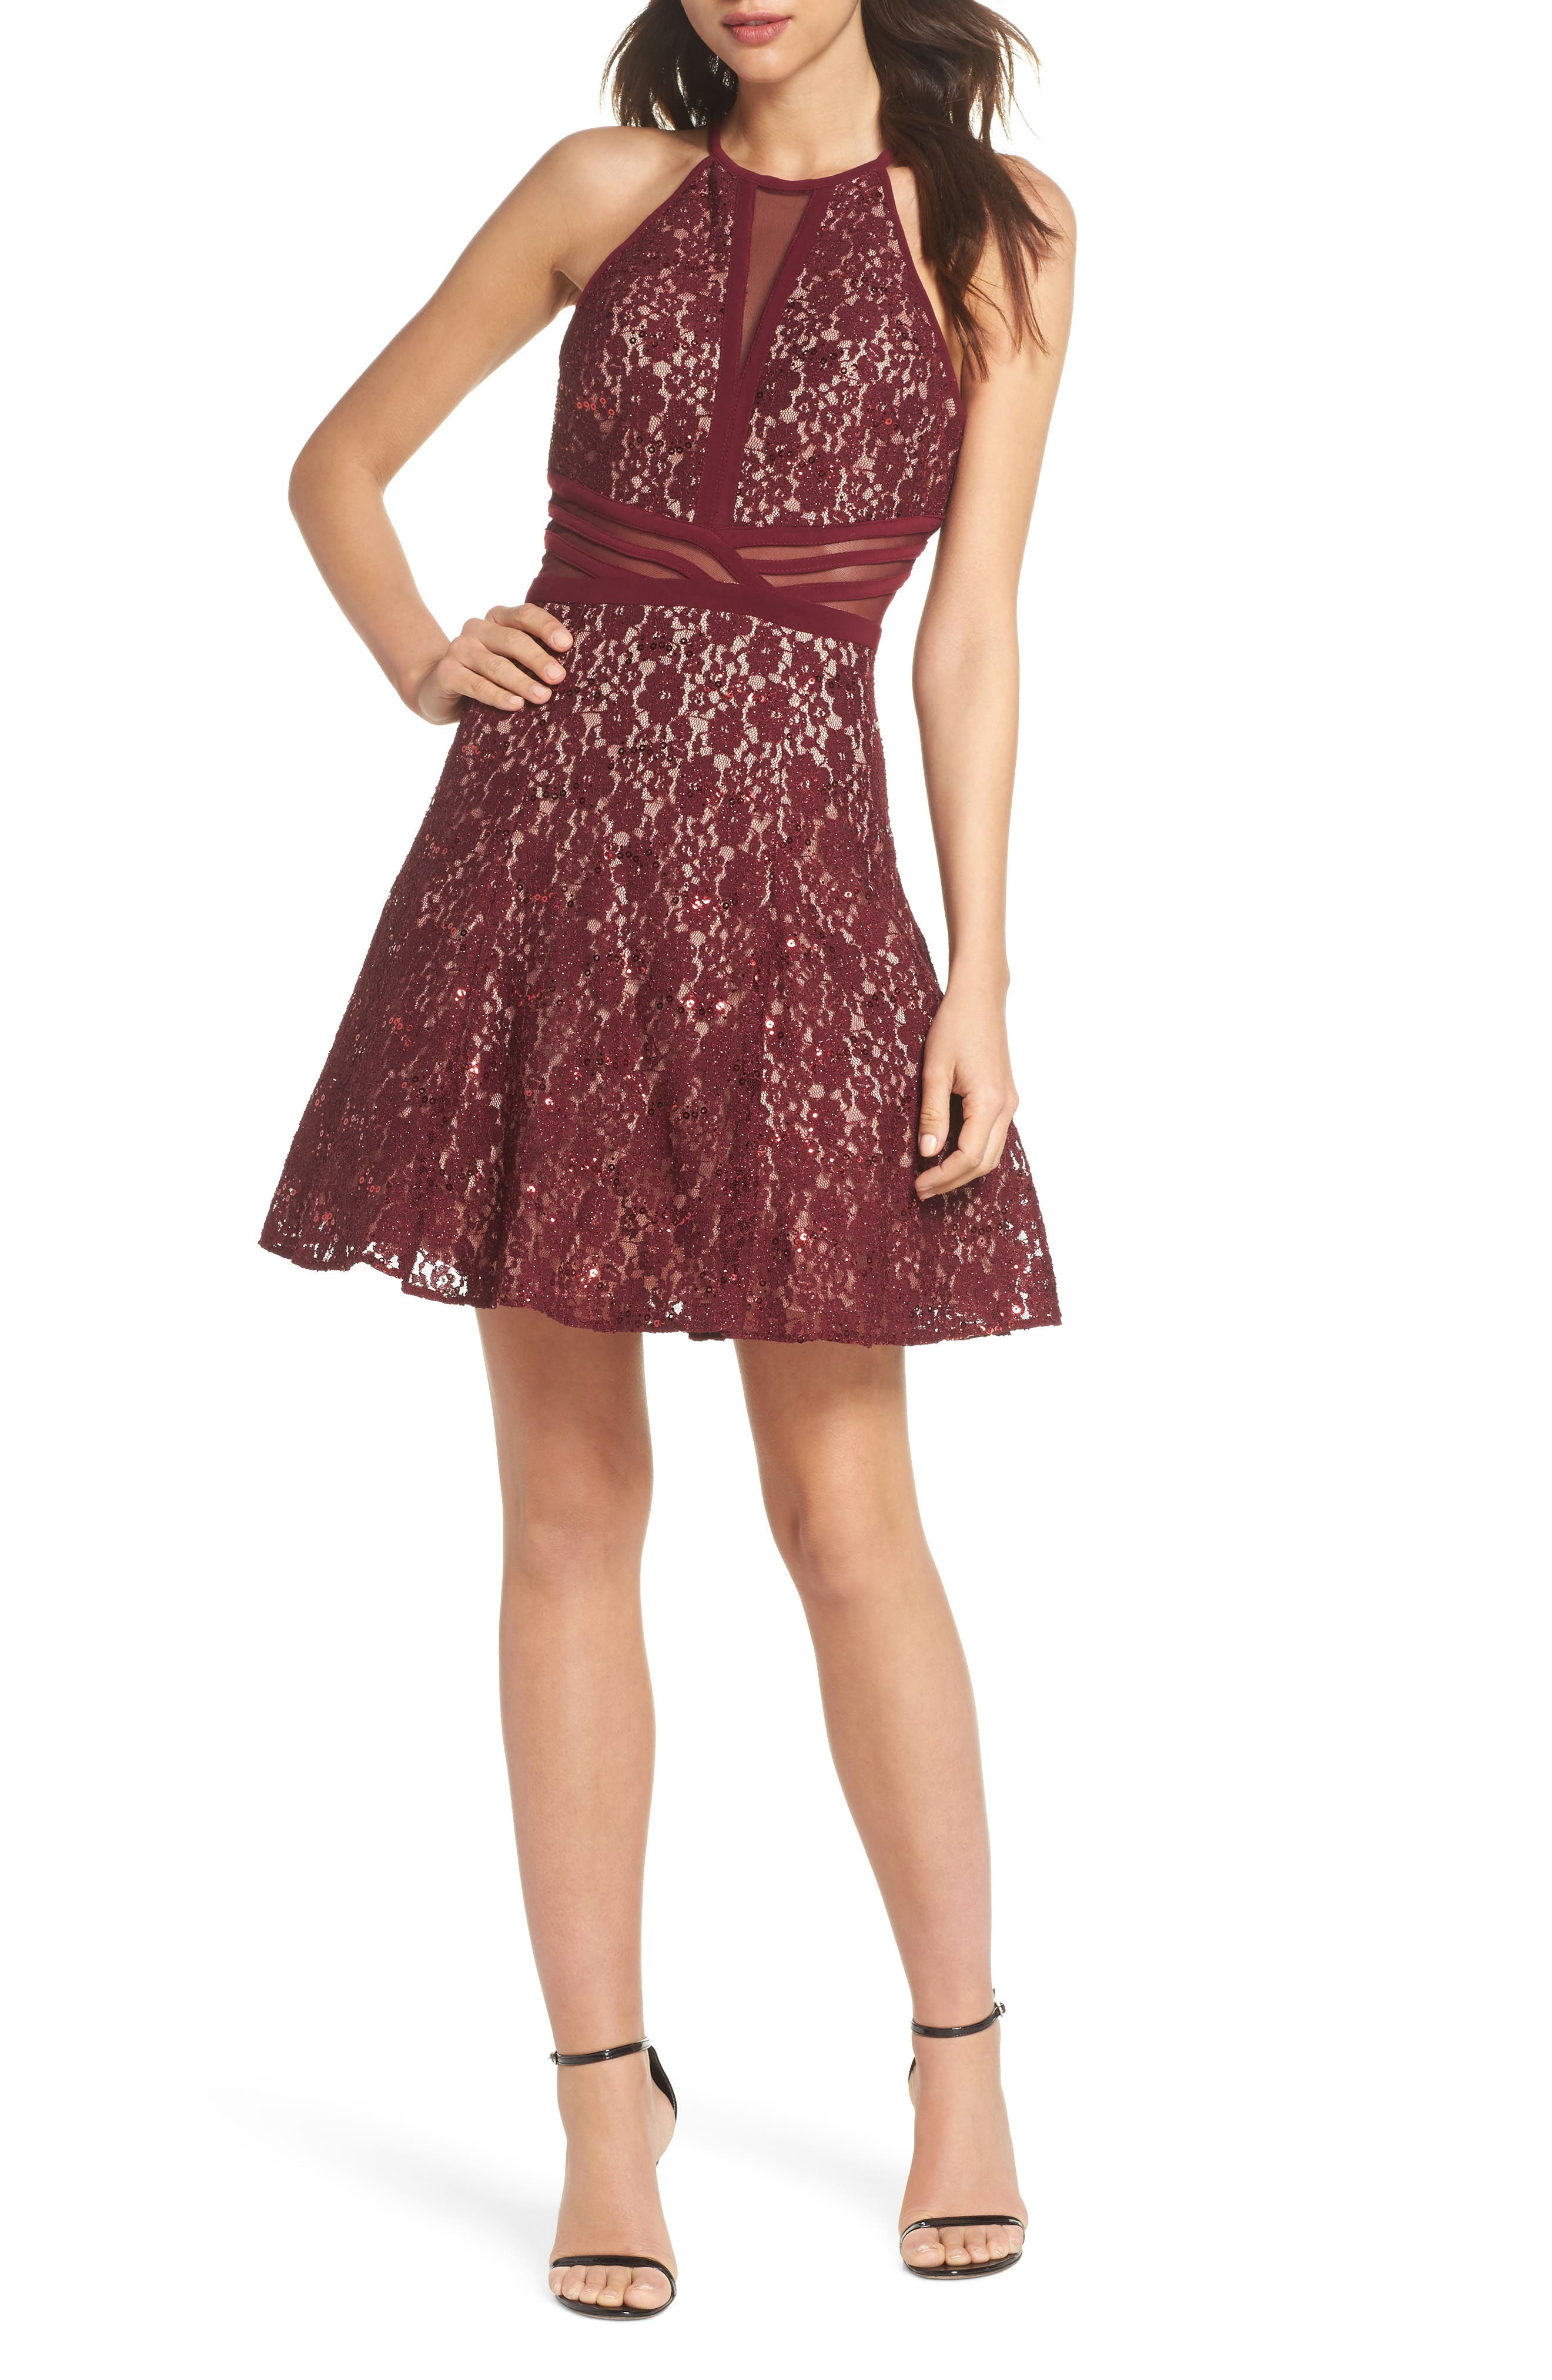 Morgan & Co. Sheer Inset Lace Fit & Flare Dress, /4 - Burgundy